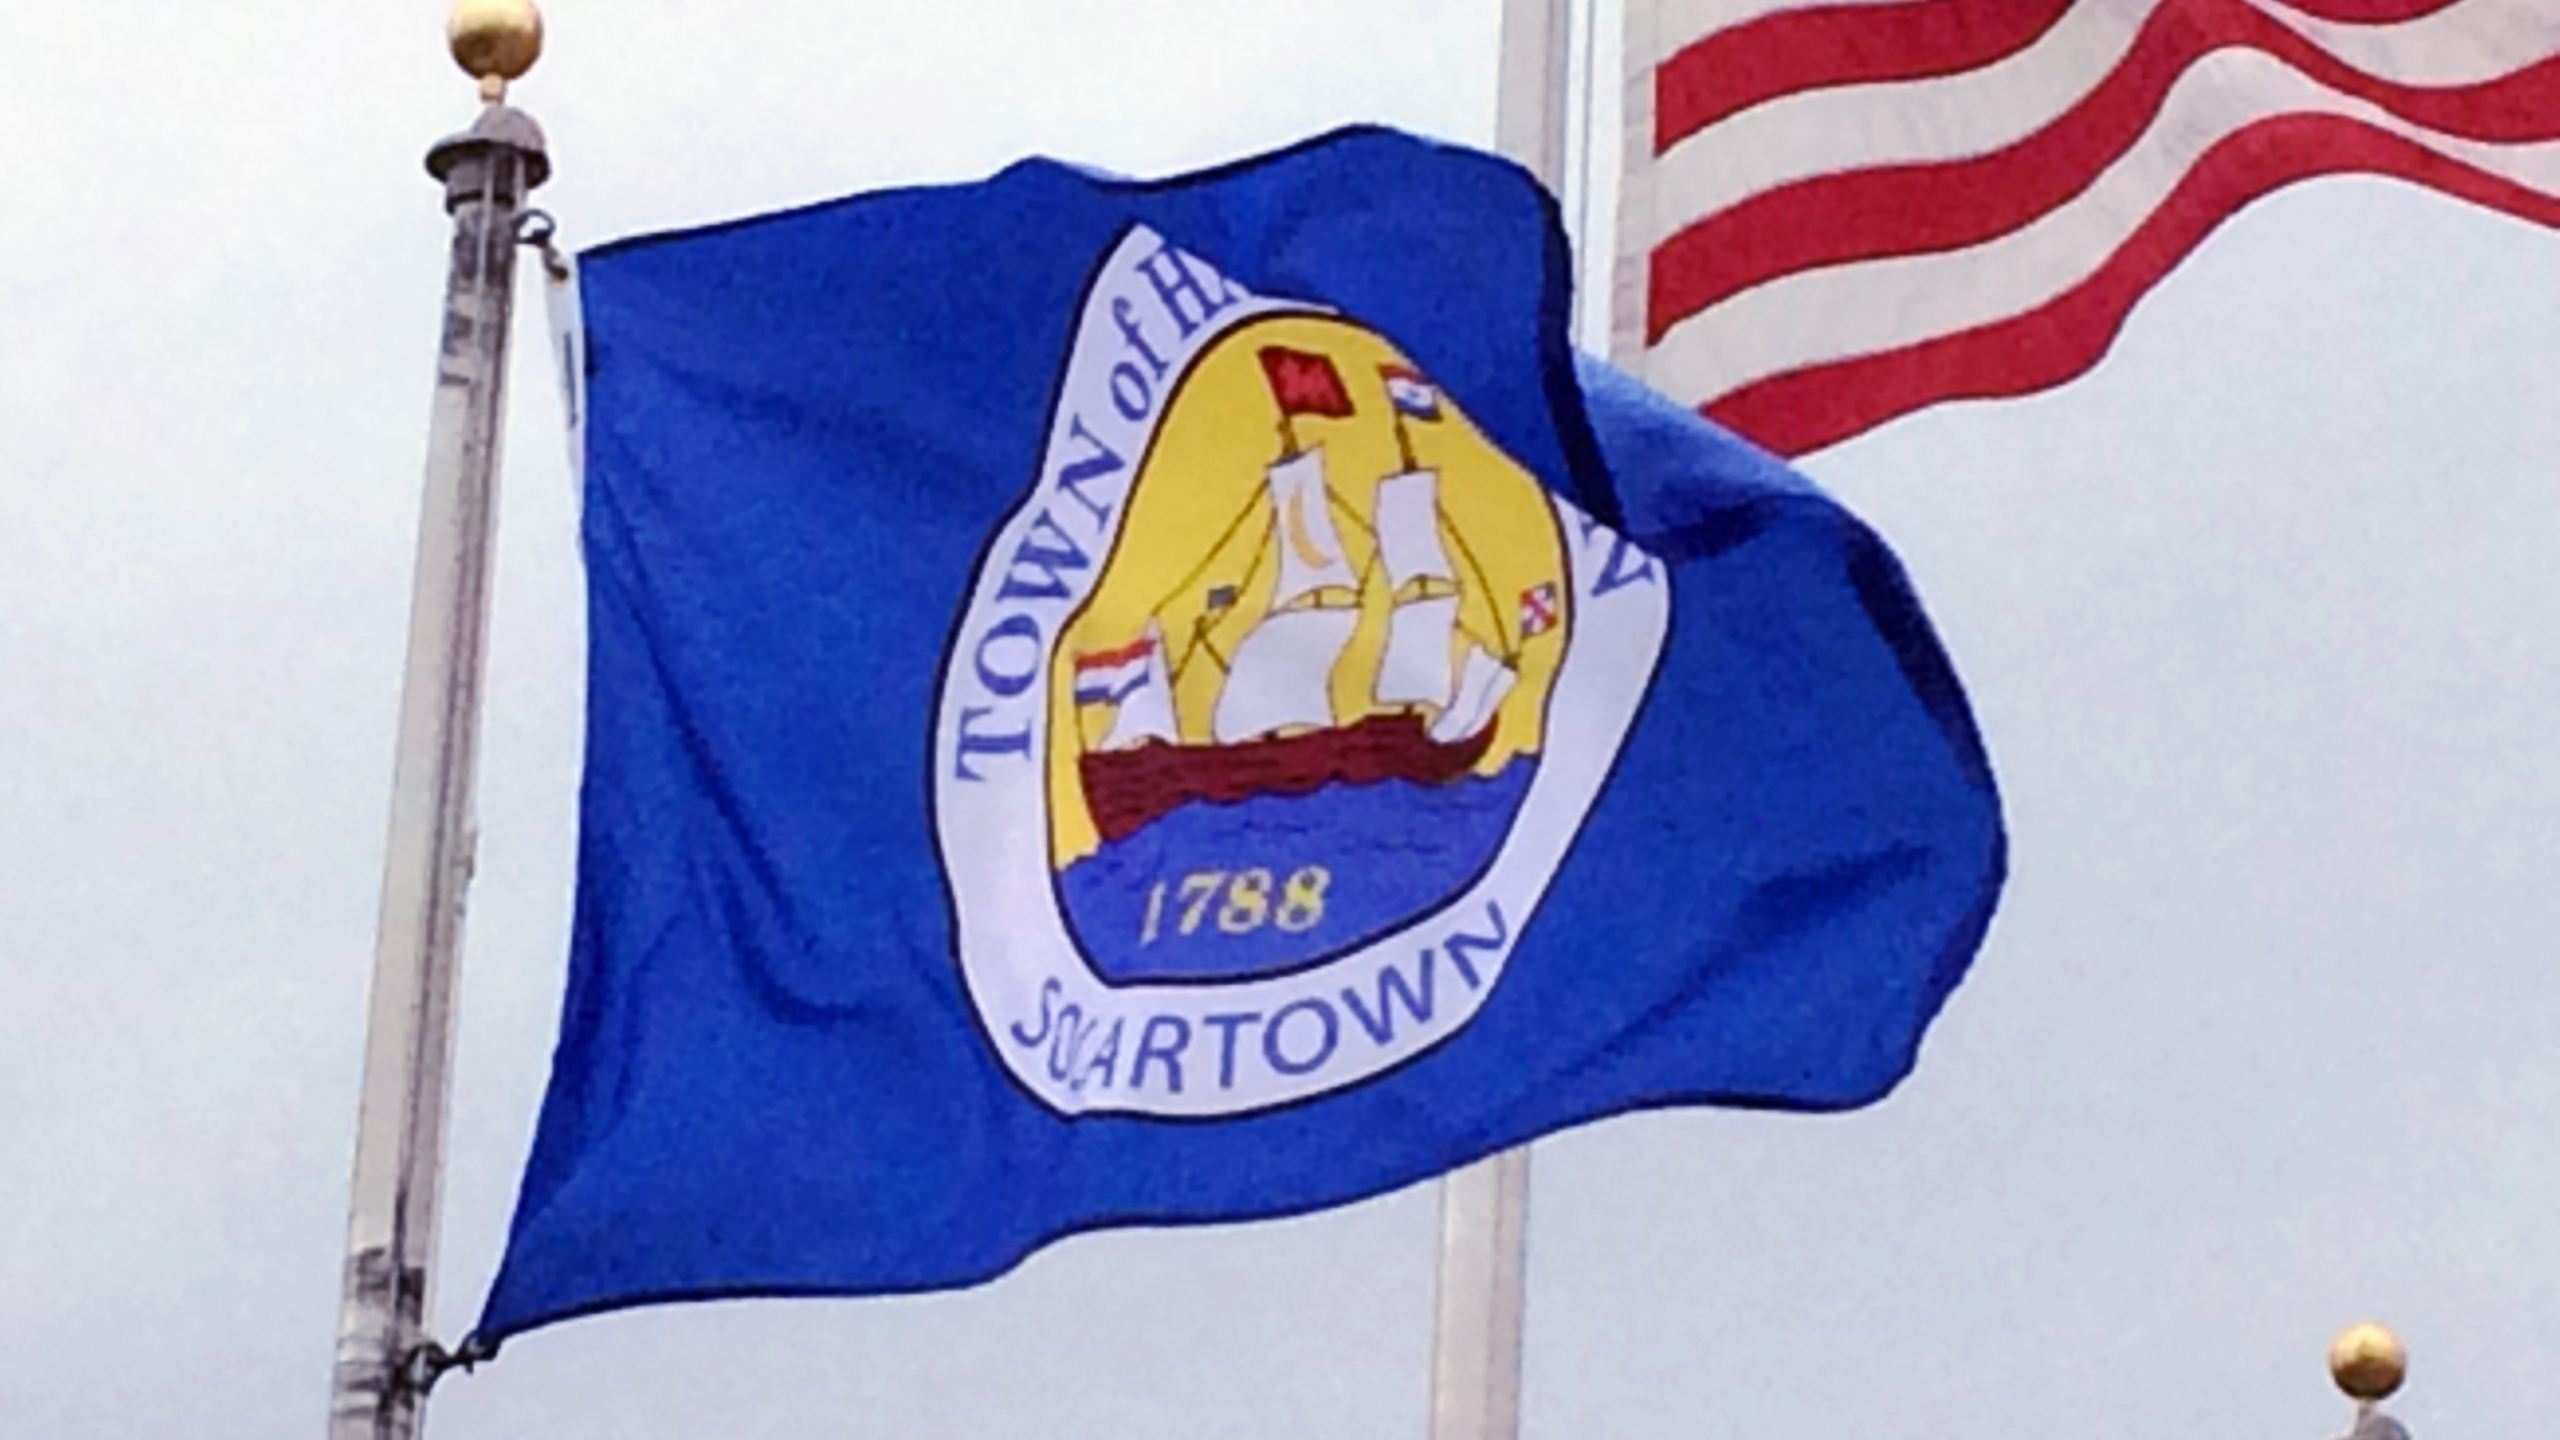 The flag of the Town of Halfmoon